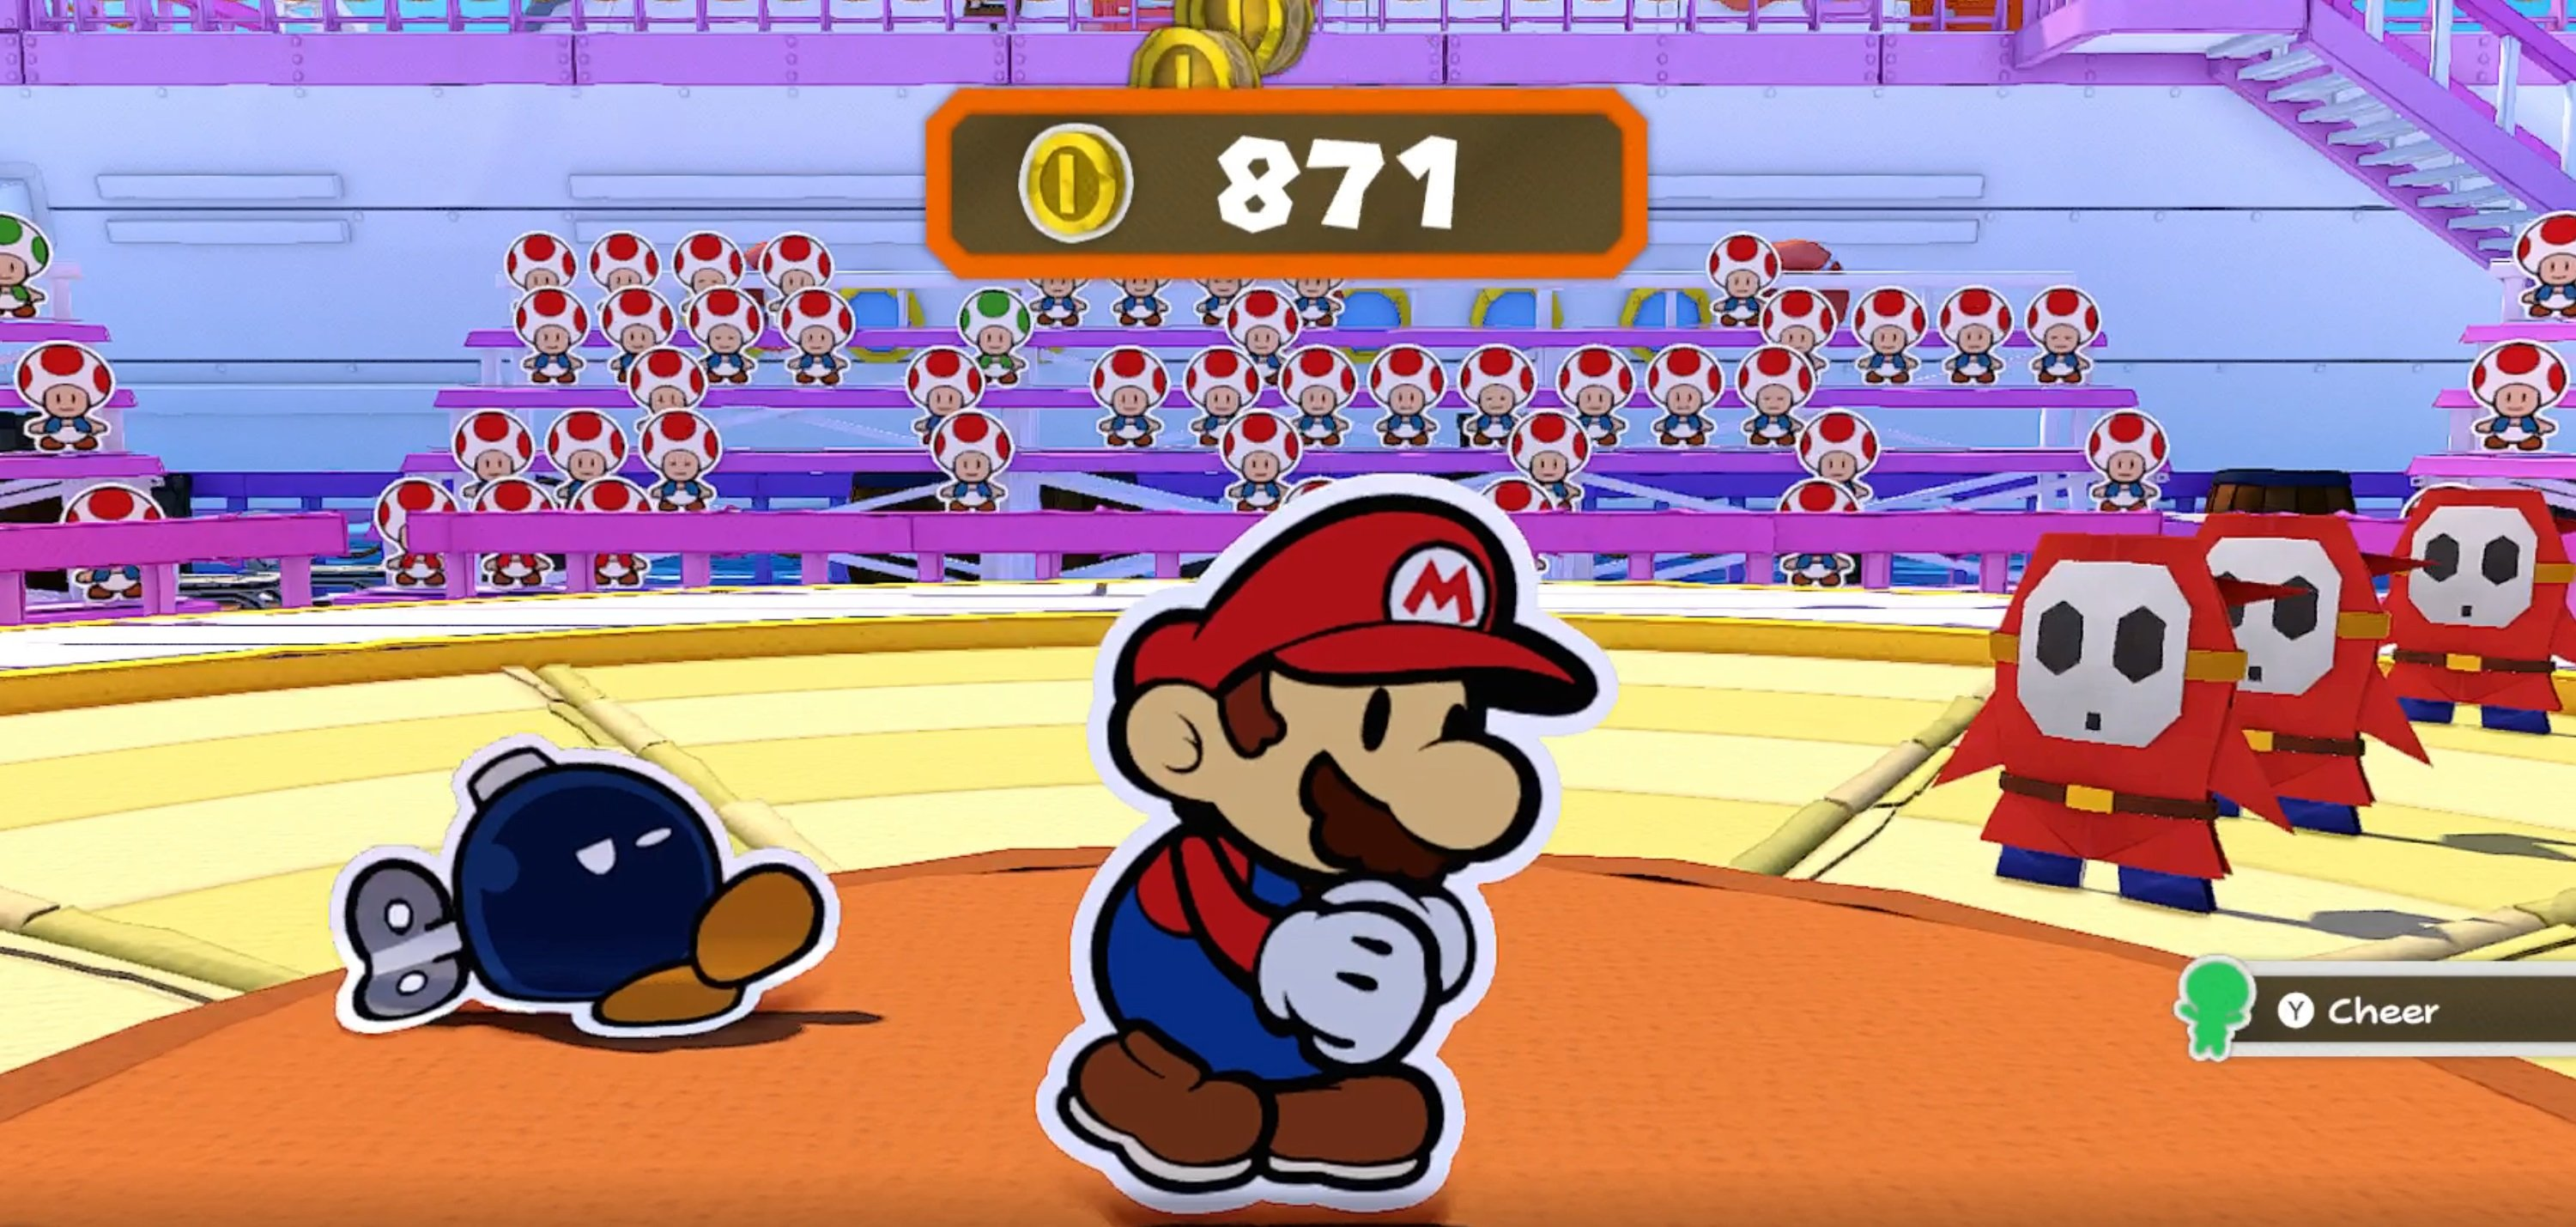 How to pay Toads in Paper Mario: The Origami King